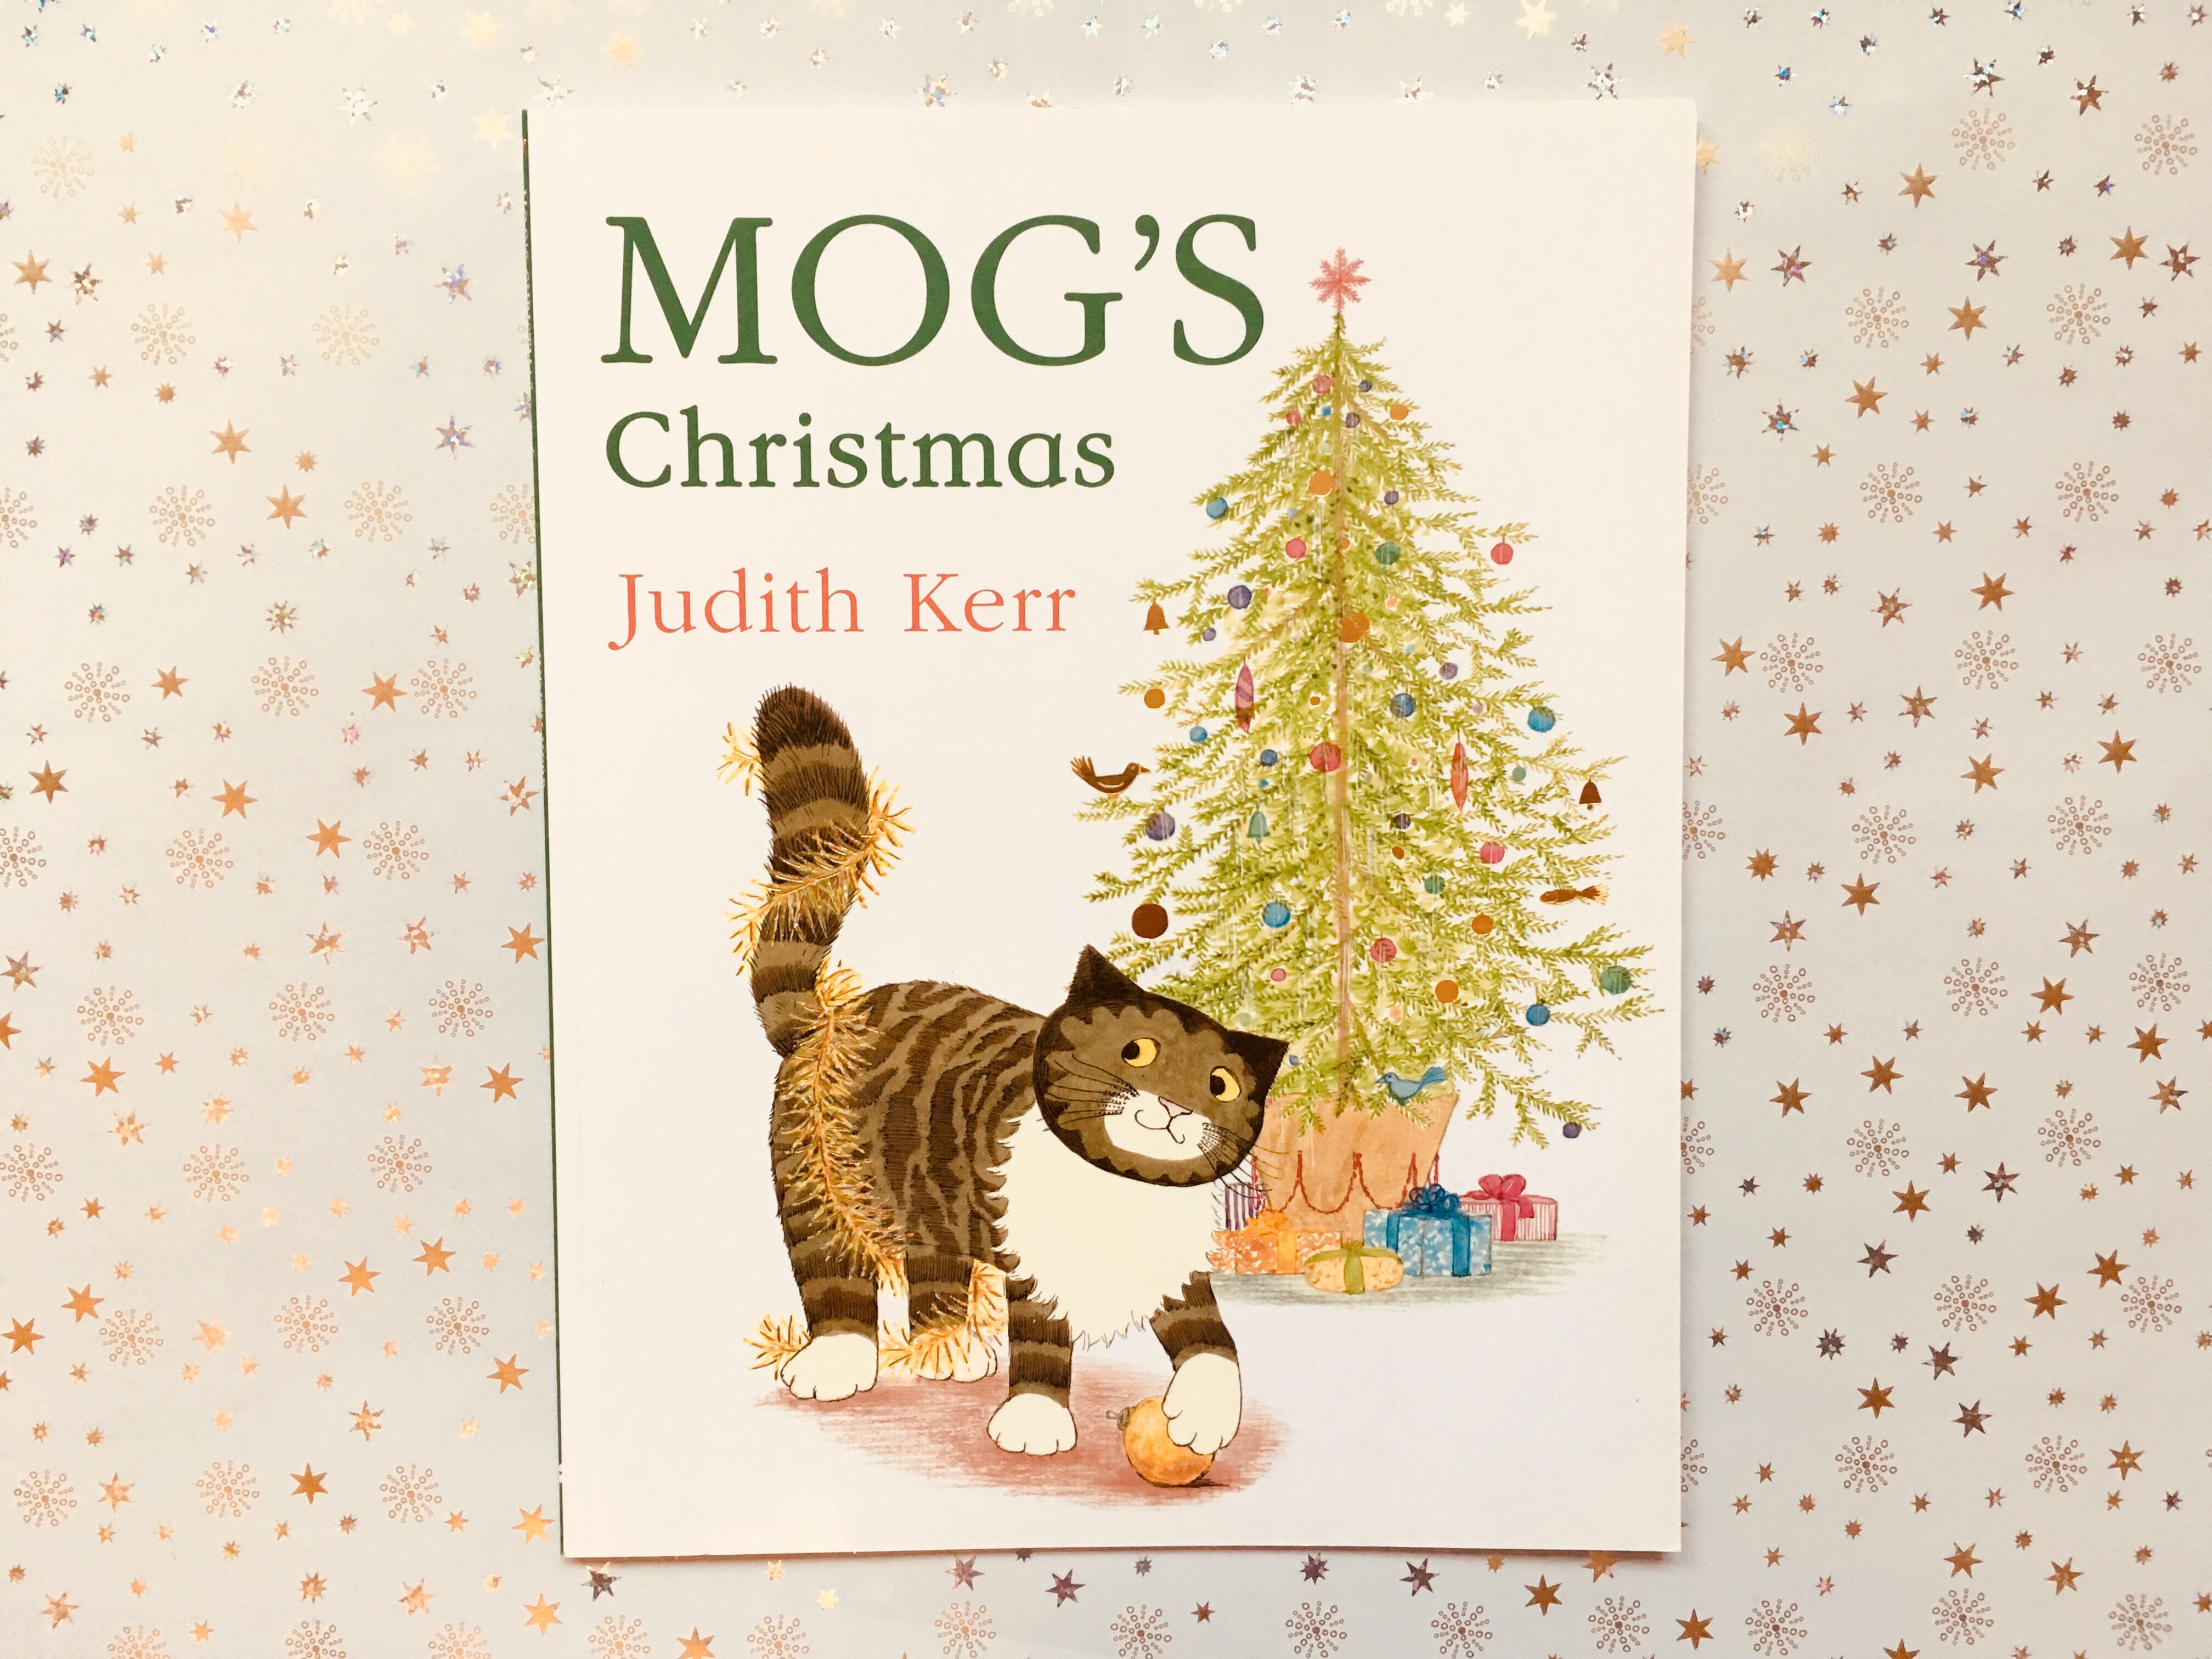 2 mogs christmas by judith kerr 699 paperback harpercollins childrens - Best Christmas Stories